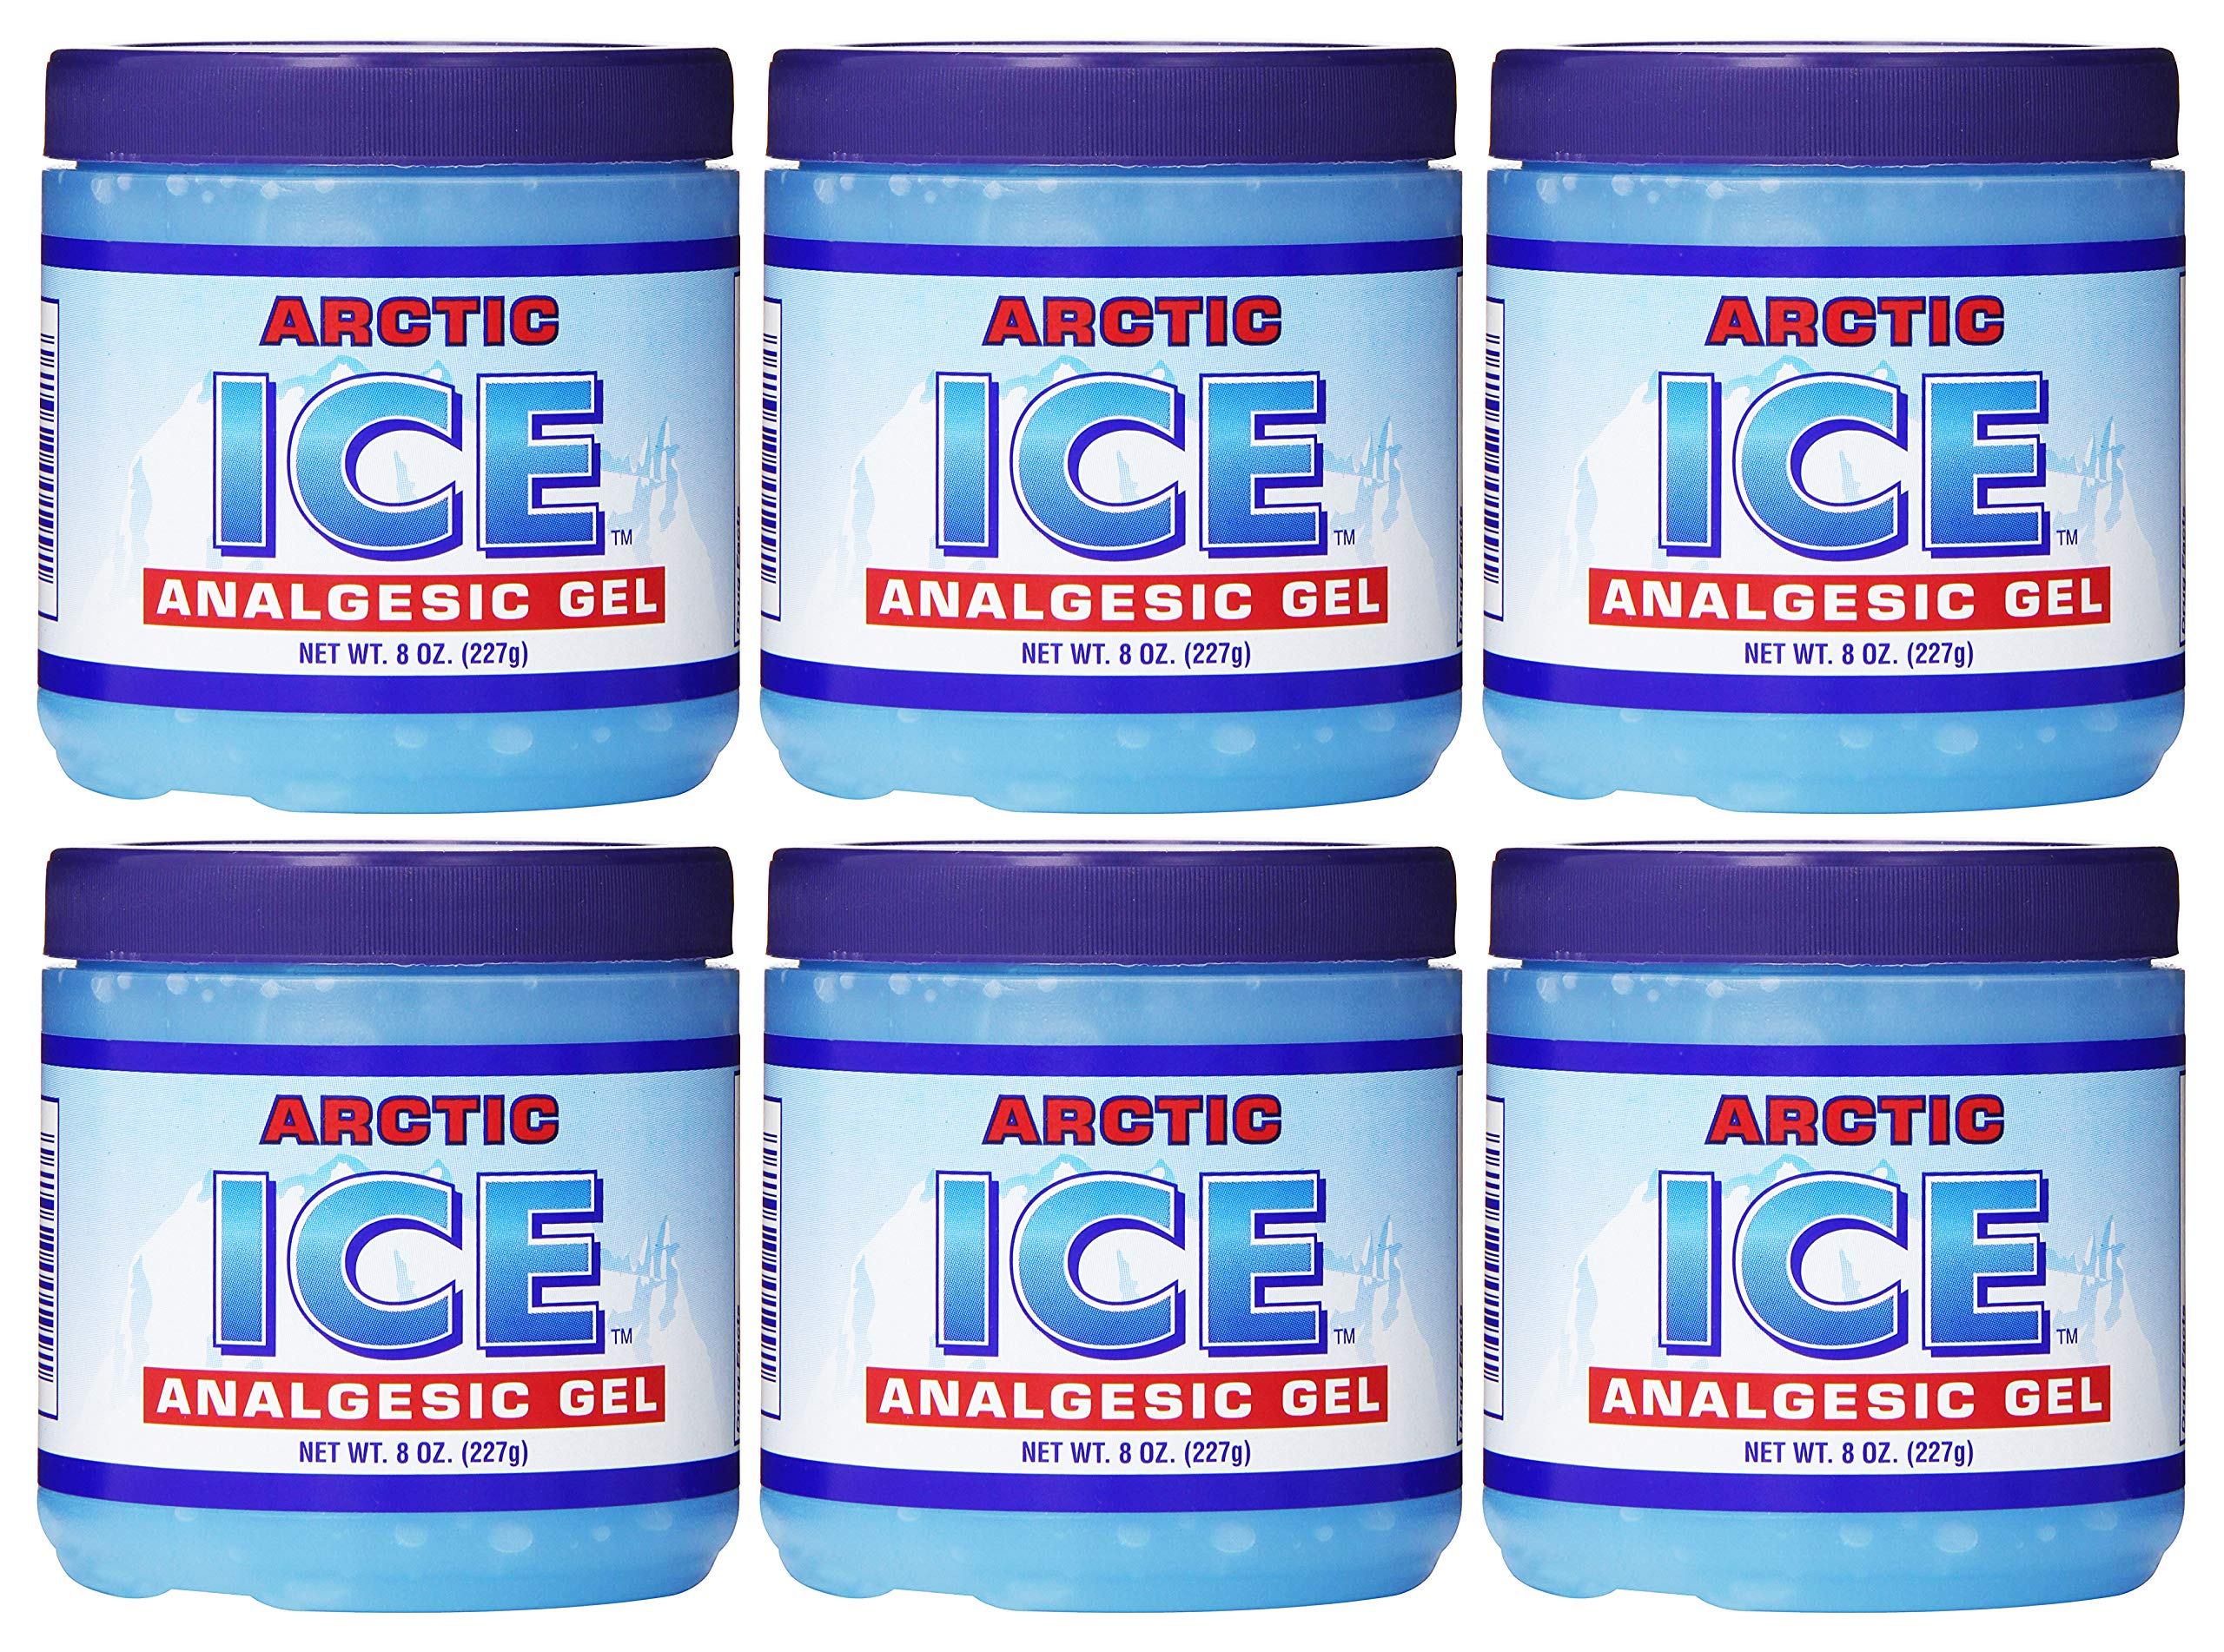 Set of 6 Pain Relief Analgesic Gels! Arctic Ice Pain Relief! 8oz Each! Stop Your Aches and Pains! Made in USA! (6)